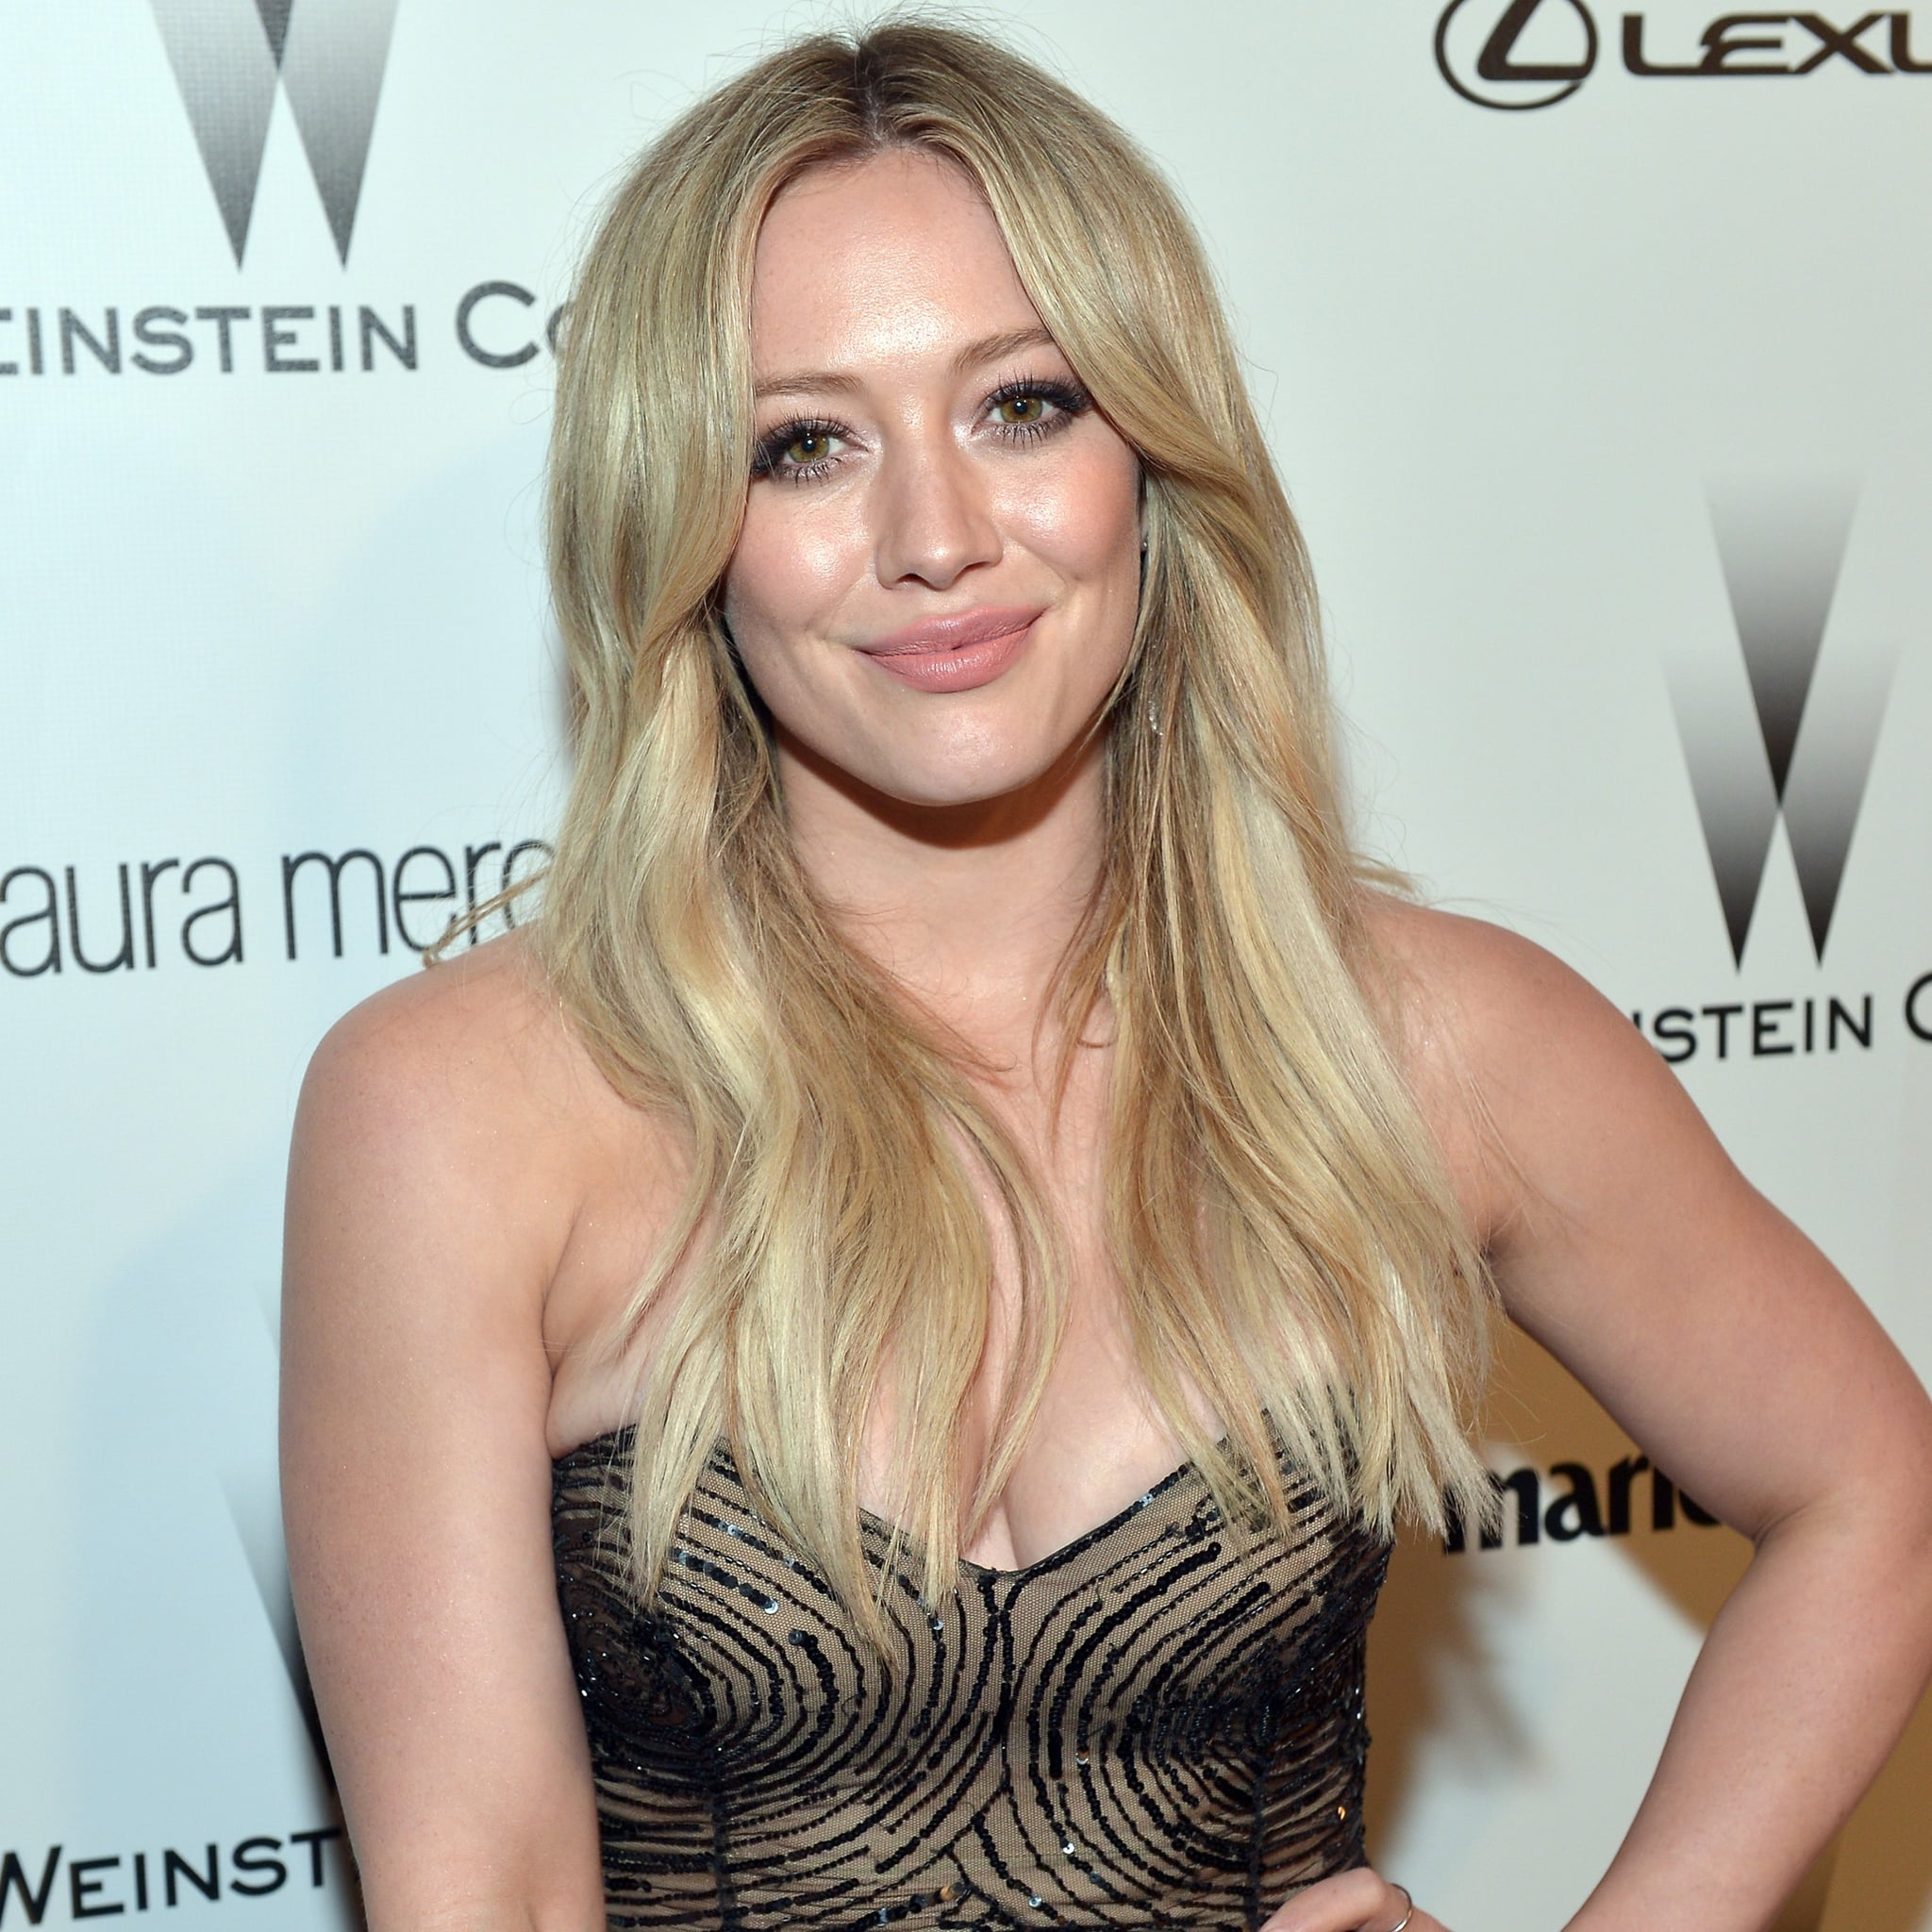 Sexy Hilary Duff Pictures Popsugar Celebrity